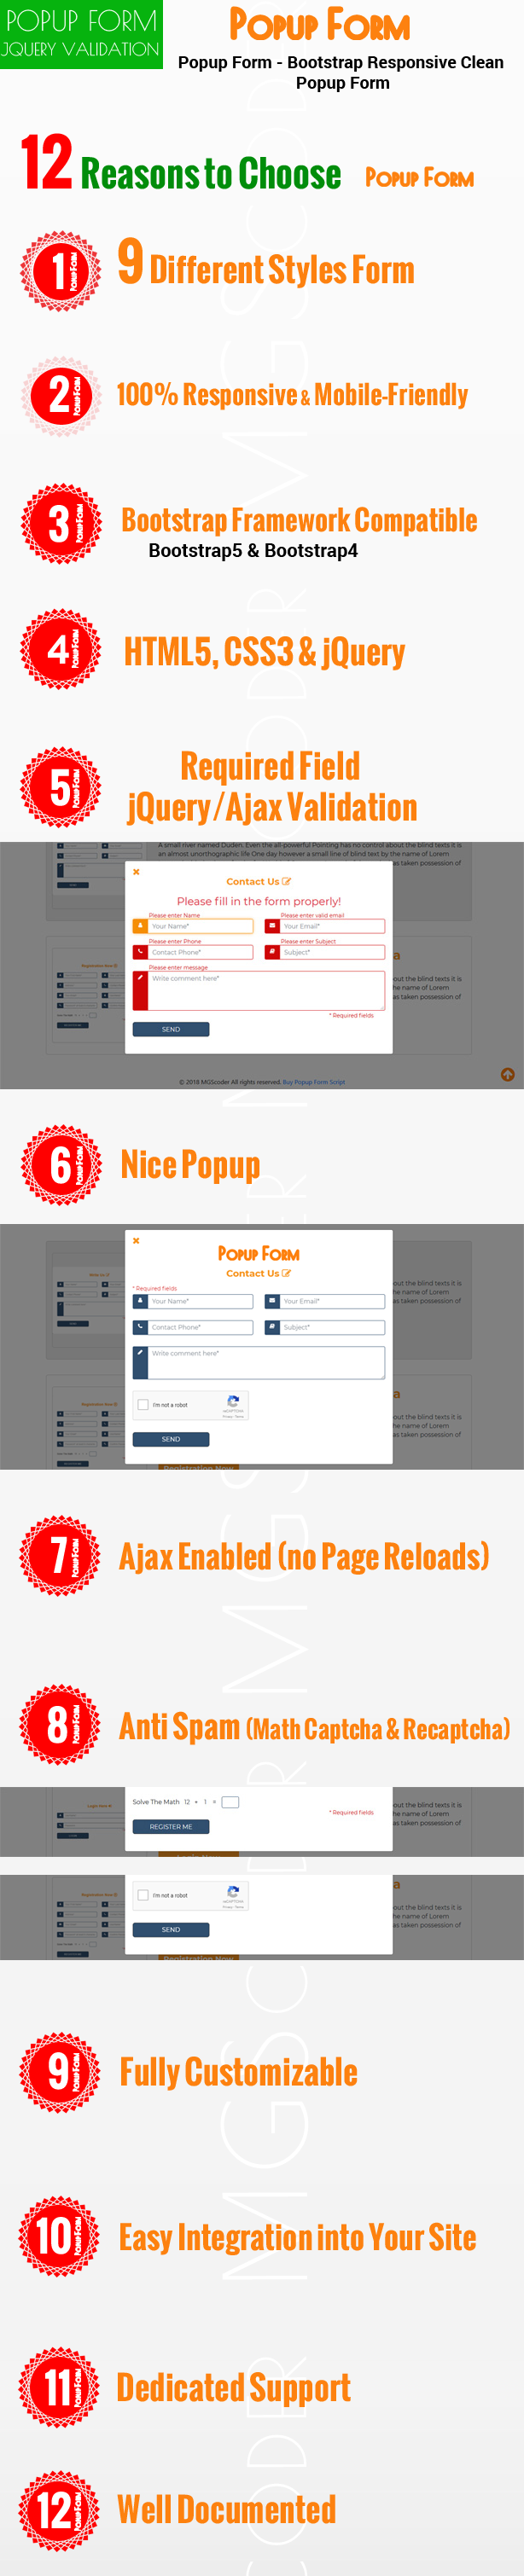 popup-form-features